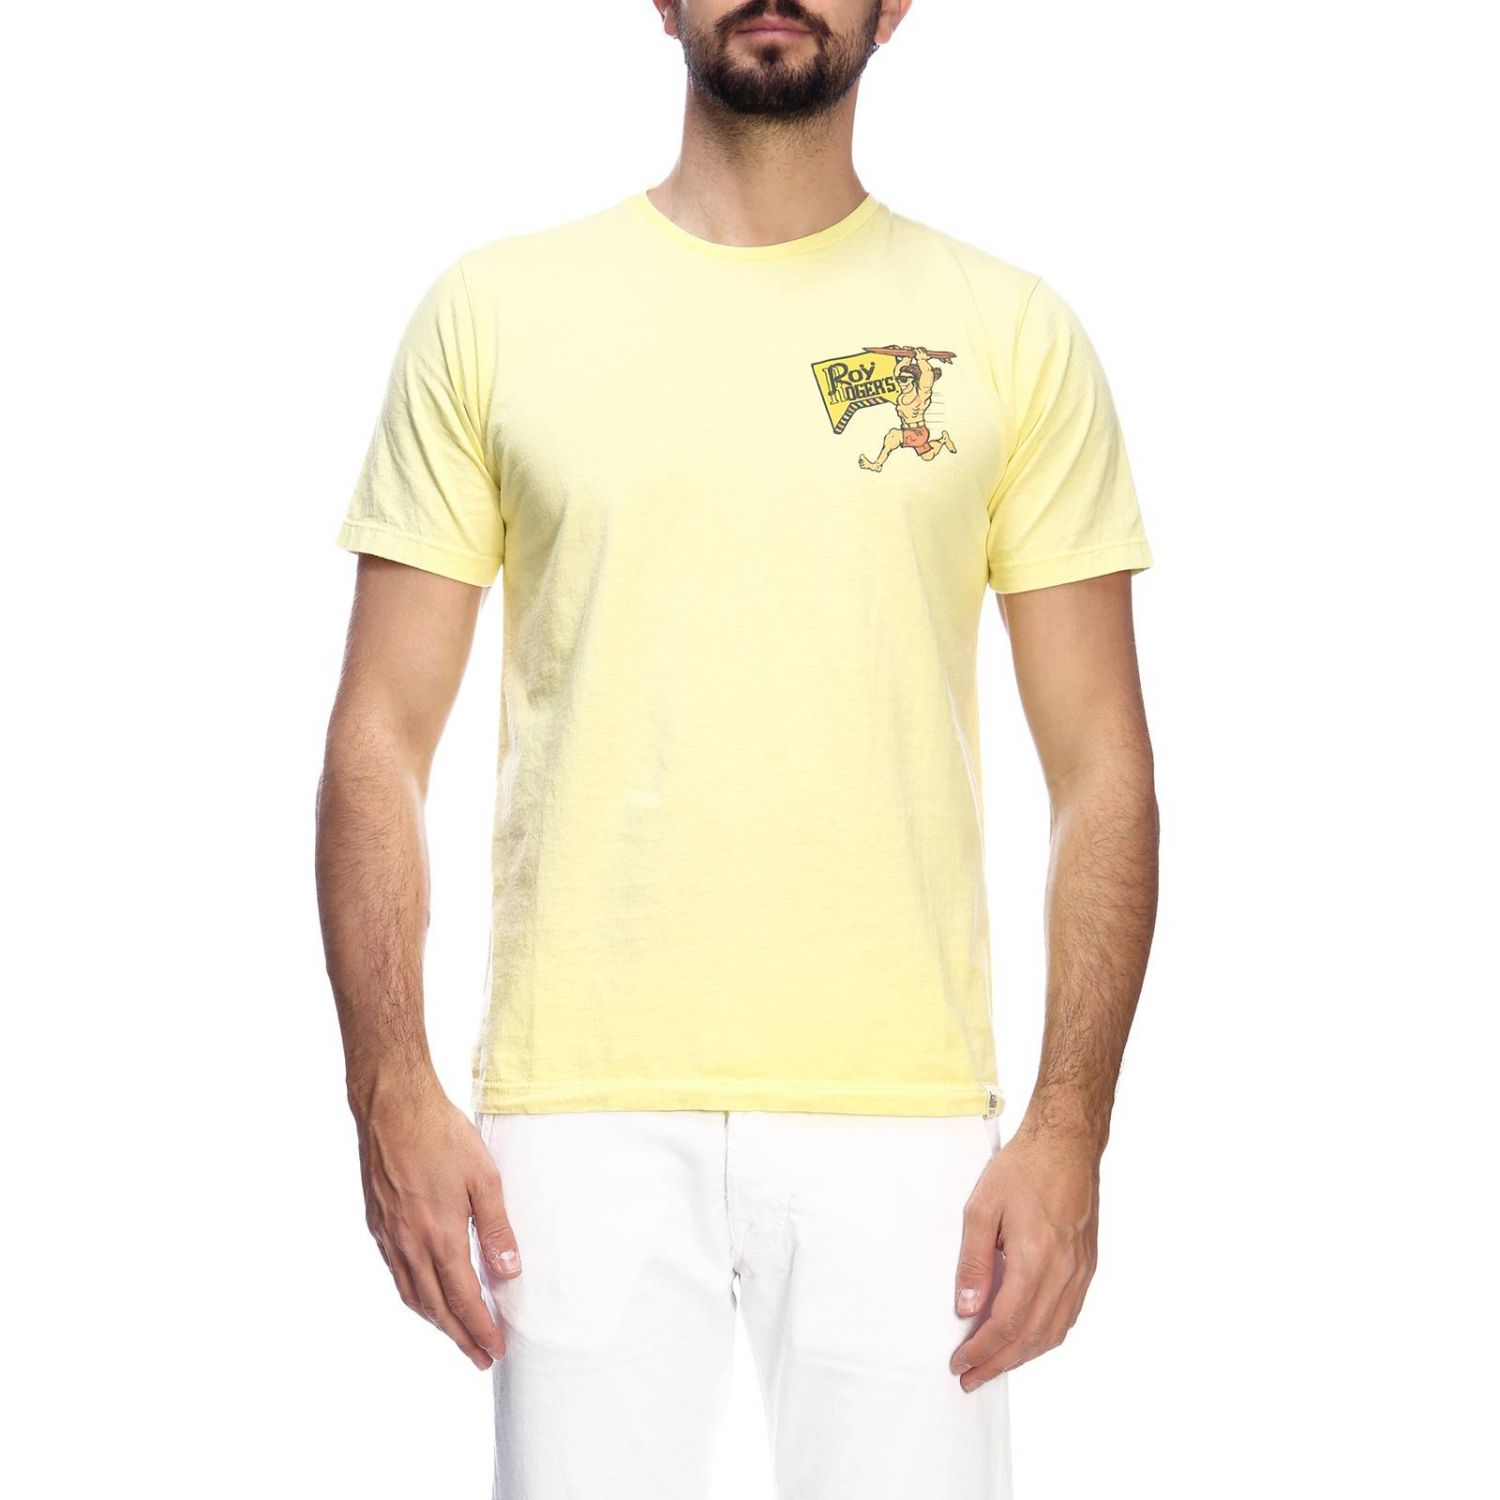 T-shirt men Roy Rogers yellow 1